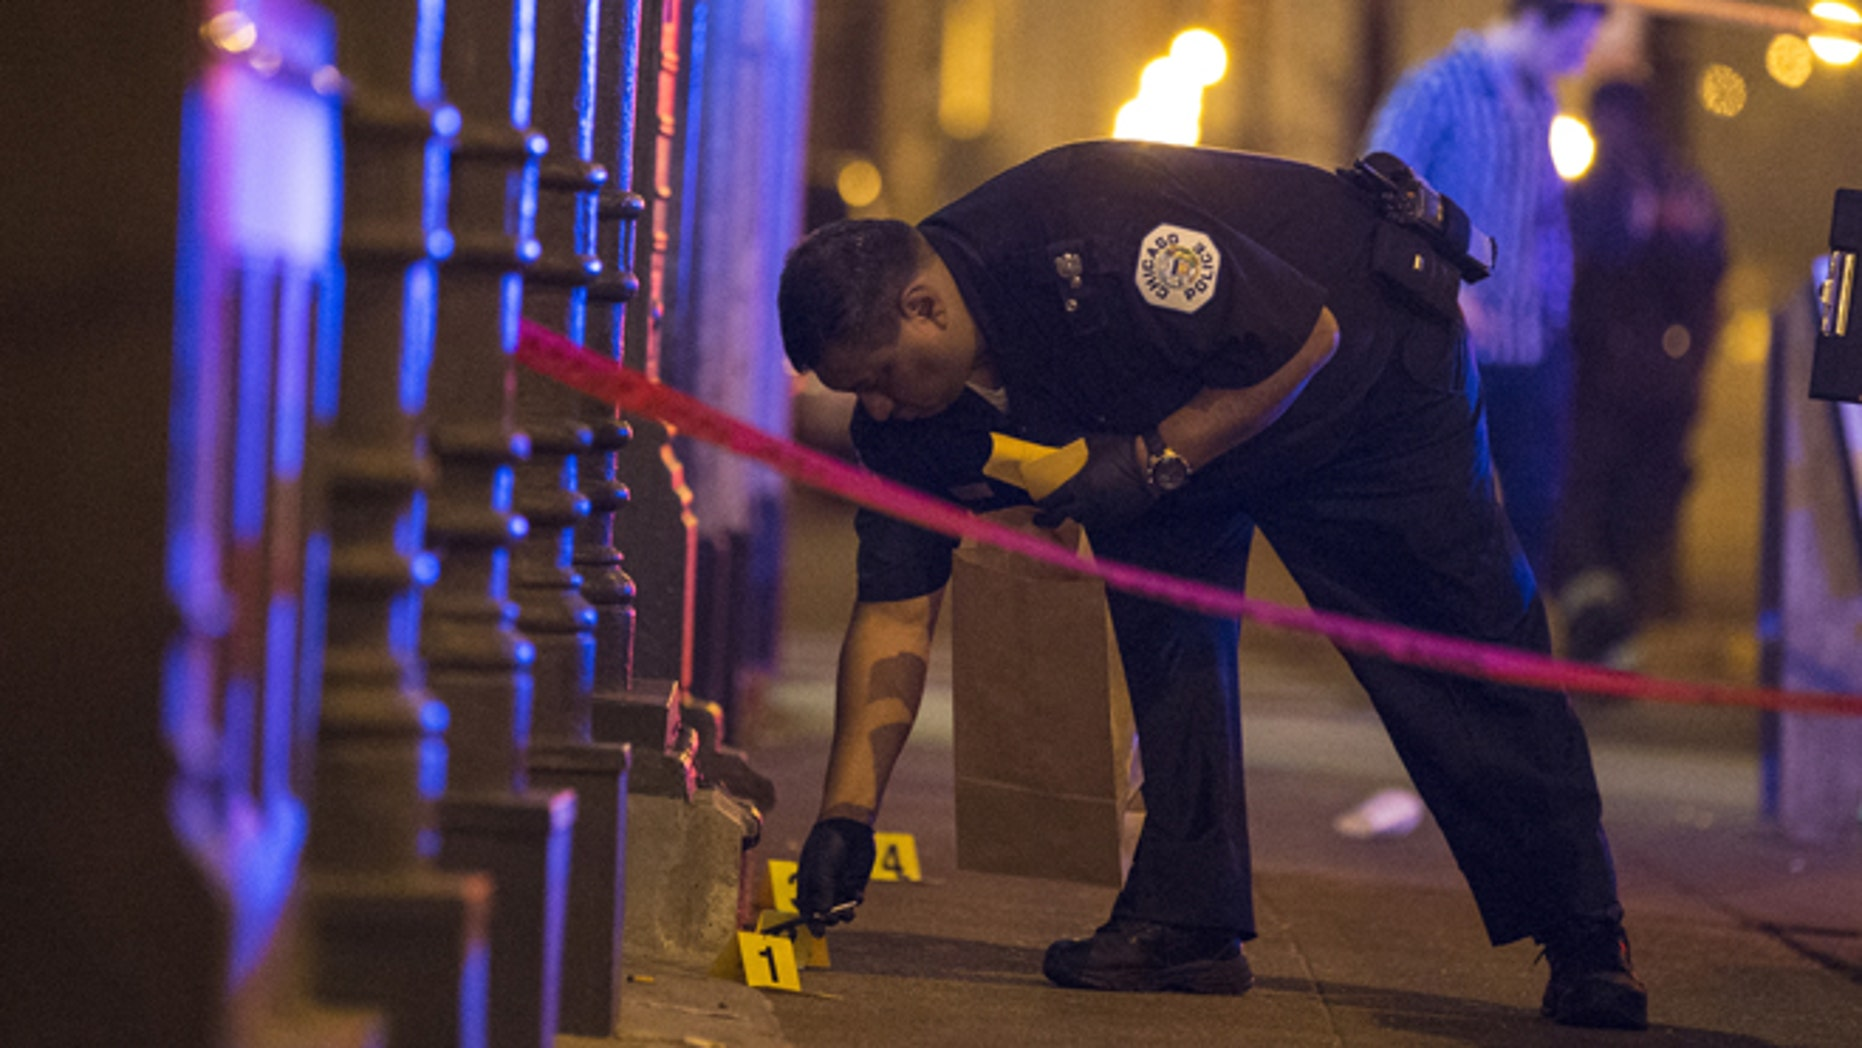 July 5, 2015: A Chicago police officer collects evidence at a crime scene where a man was shot in the city.